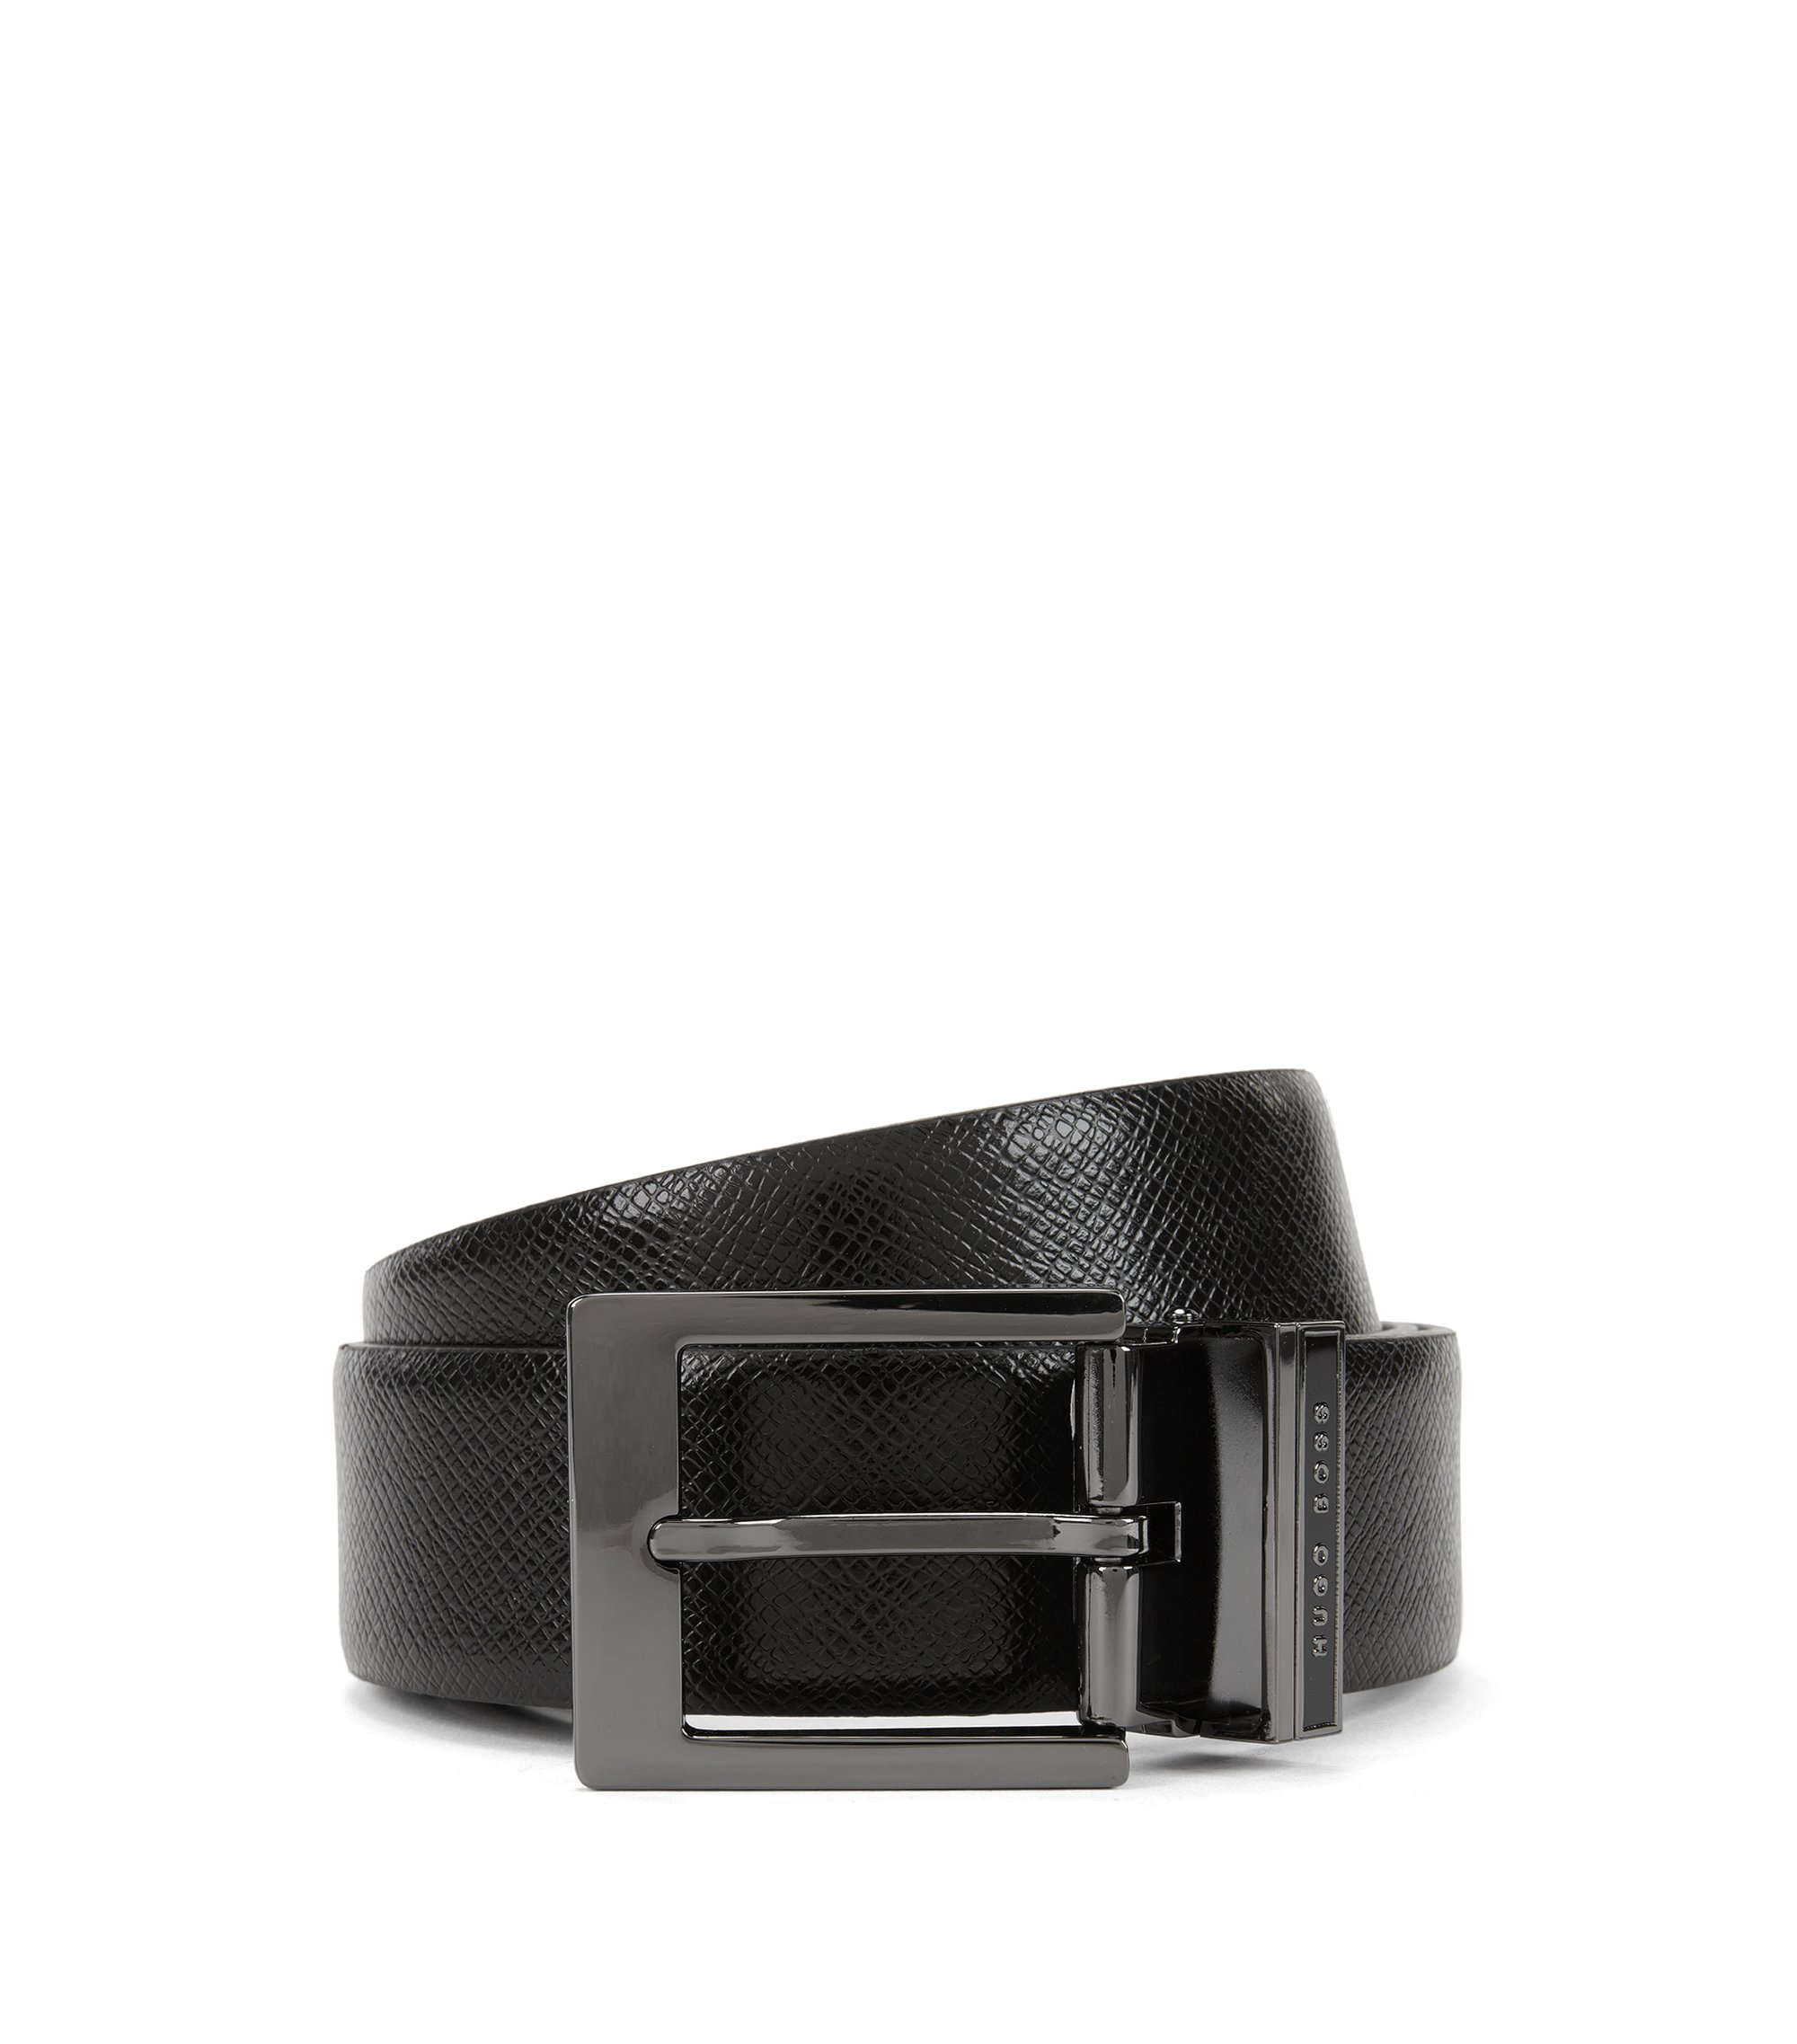 Embossed Leather Belt | Olaf Or35 Ps, Black